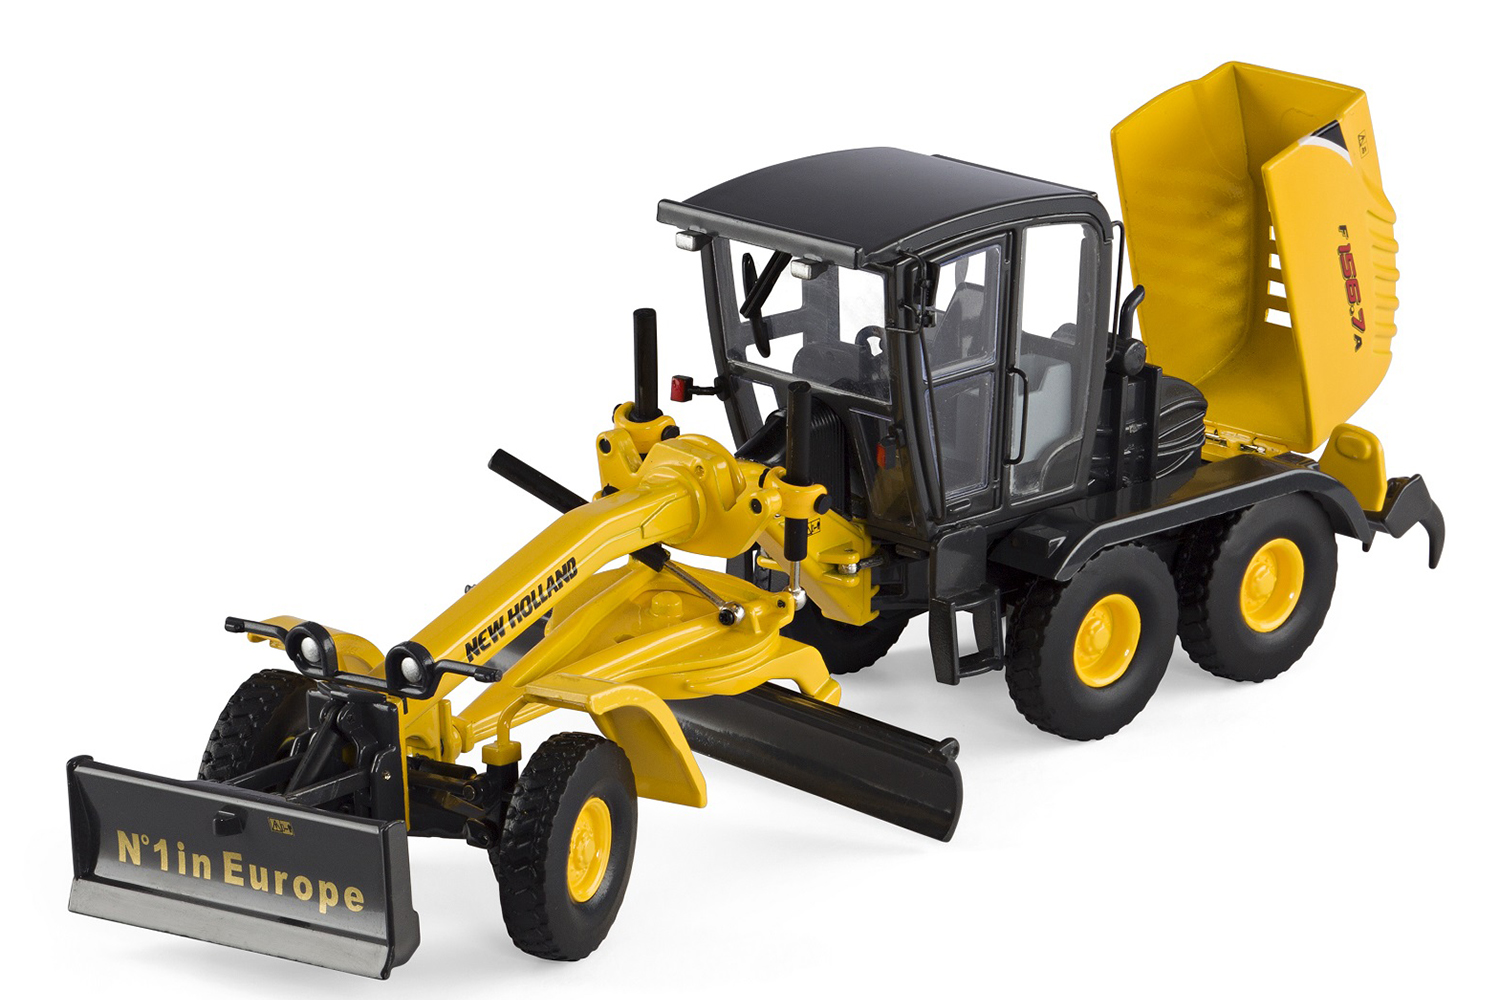 New holland f156 photo - 5